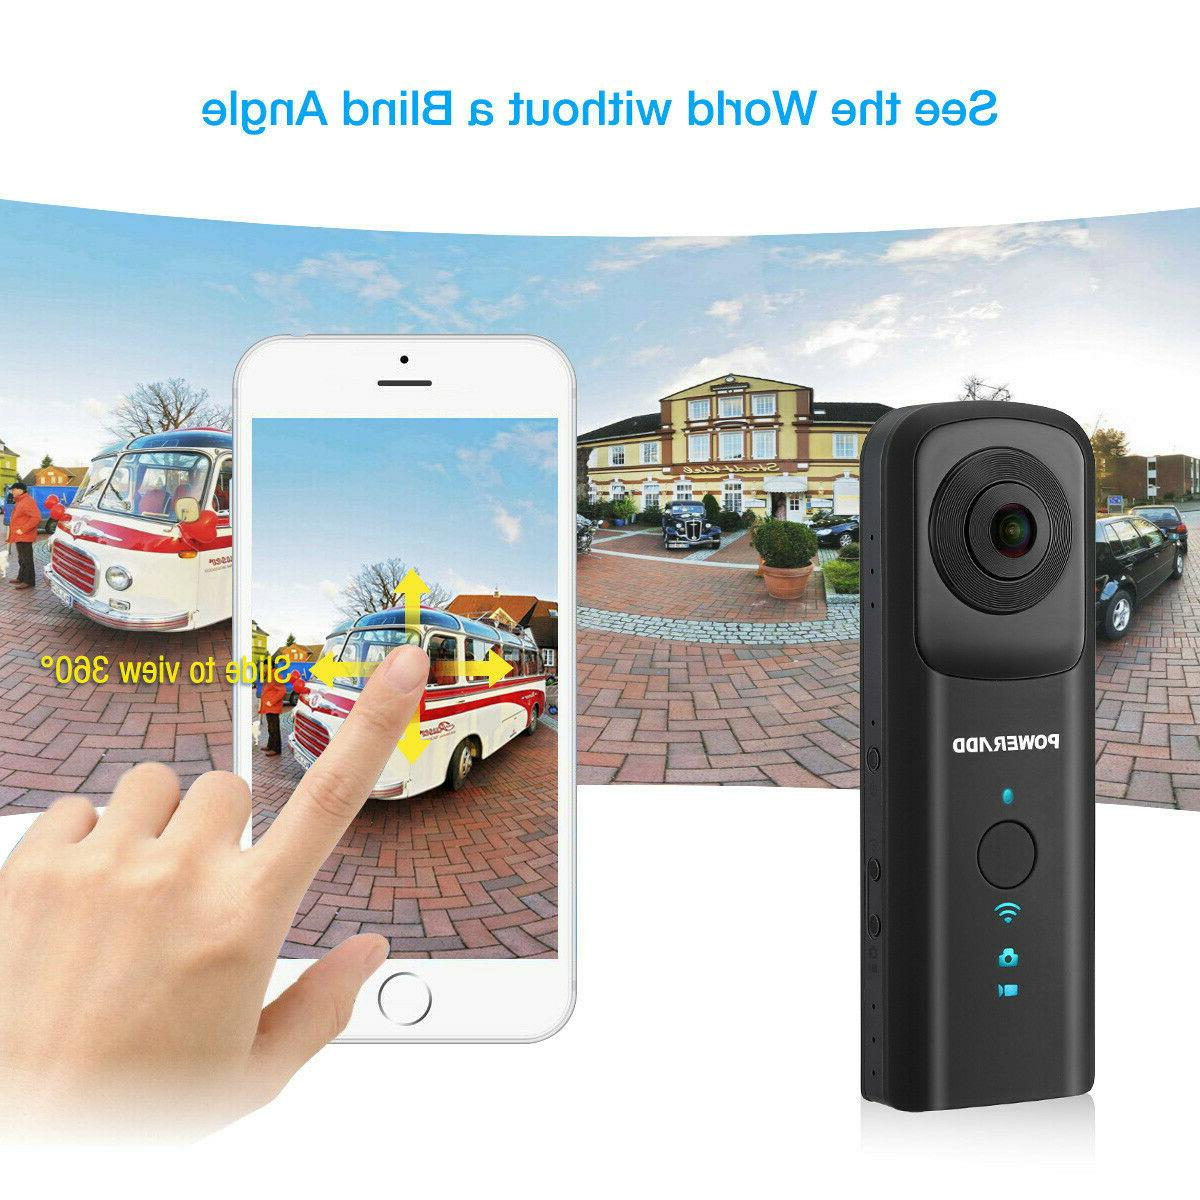 360° WiFi Video Action Dual Fisheye Lens Panoramic Camcorder